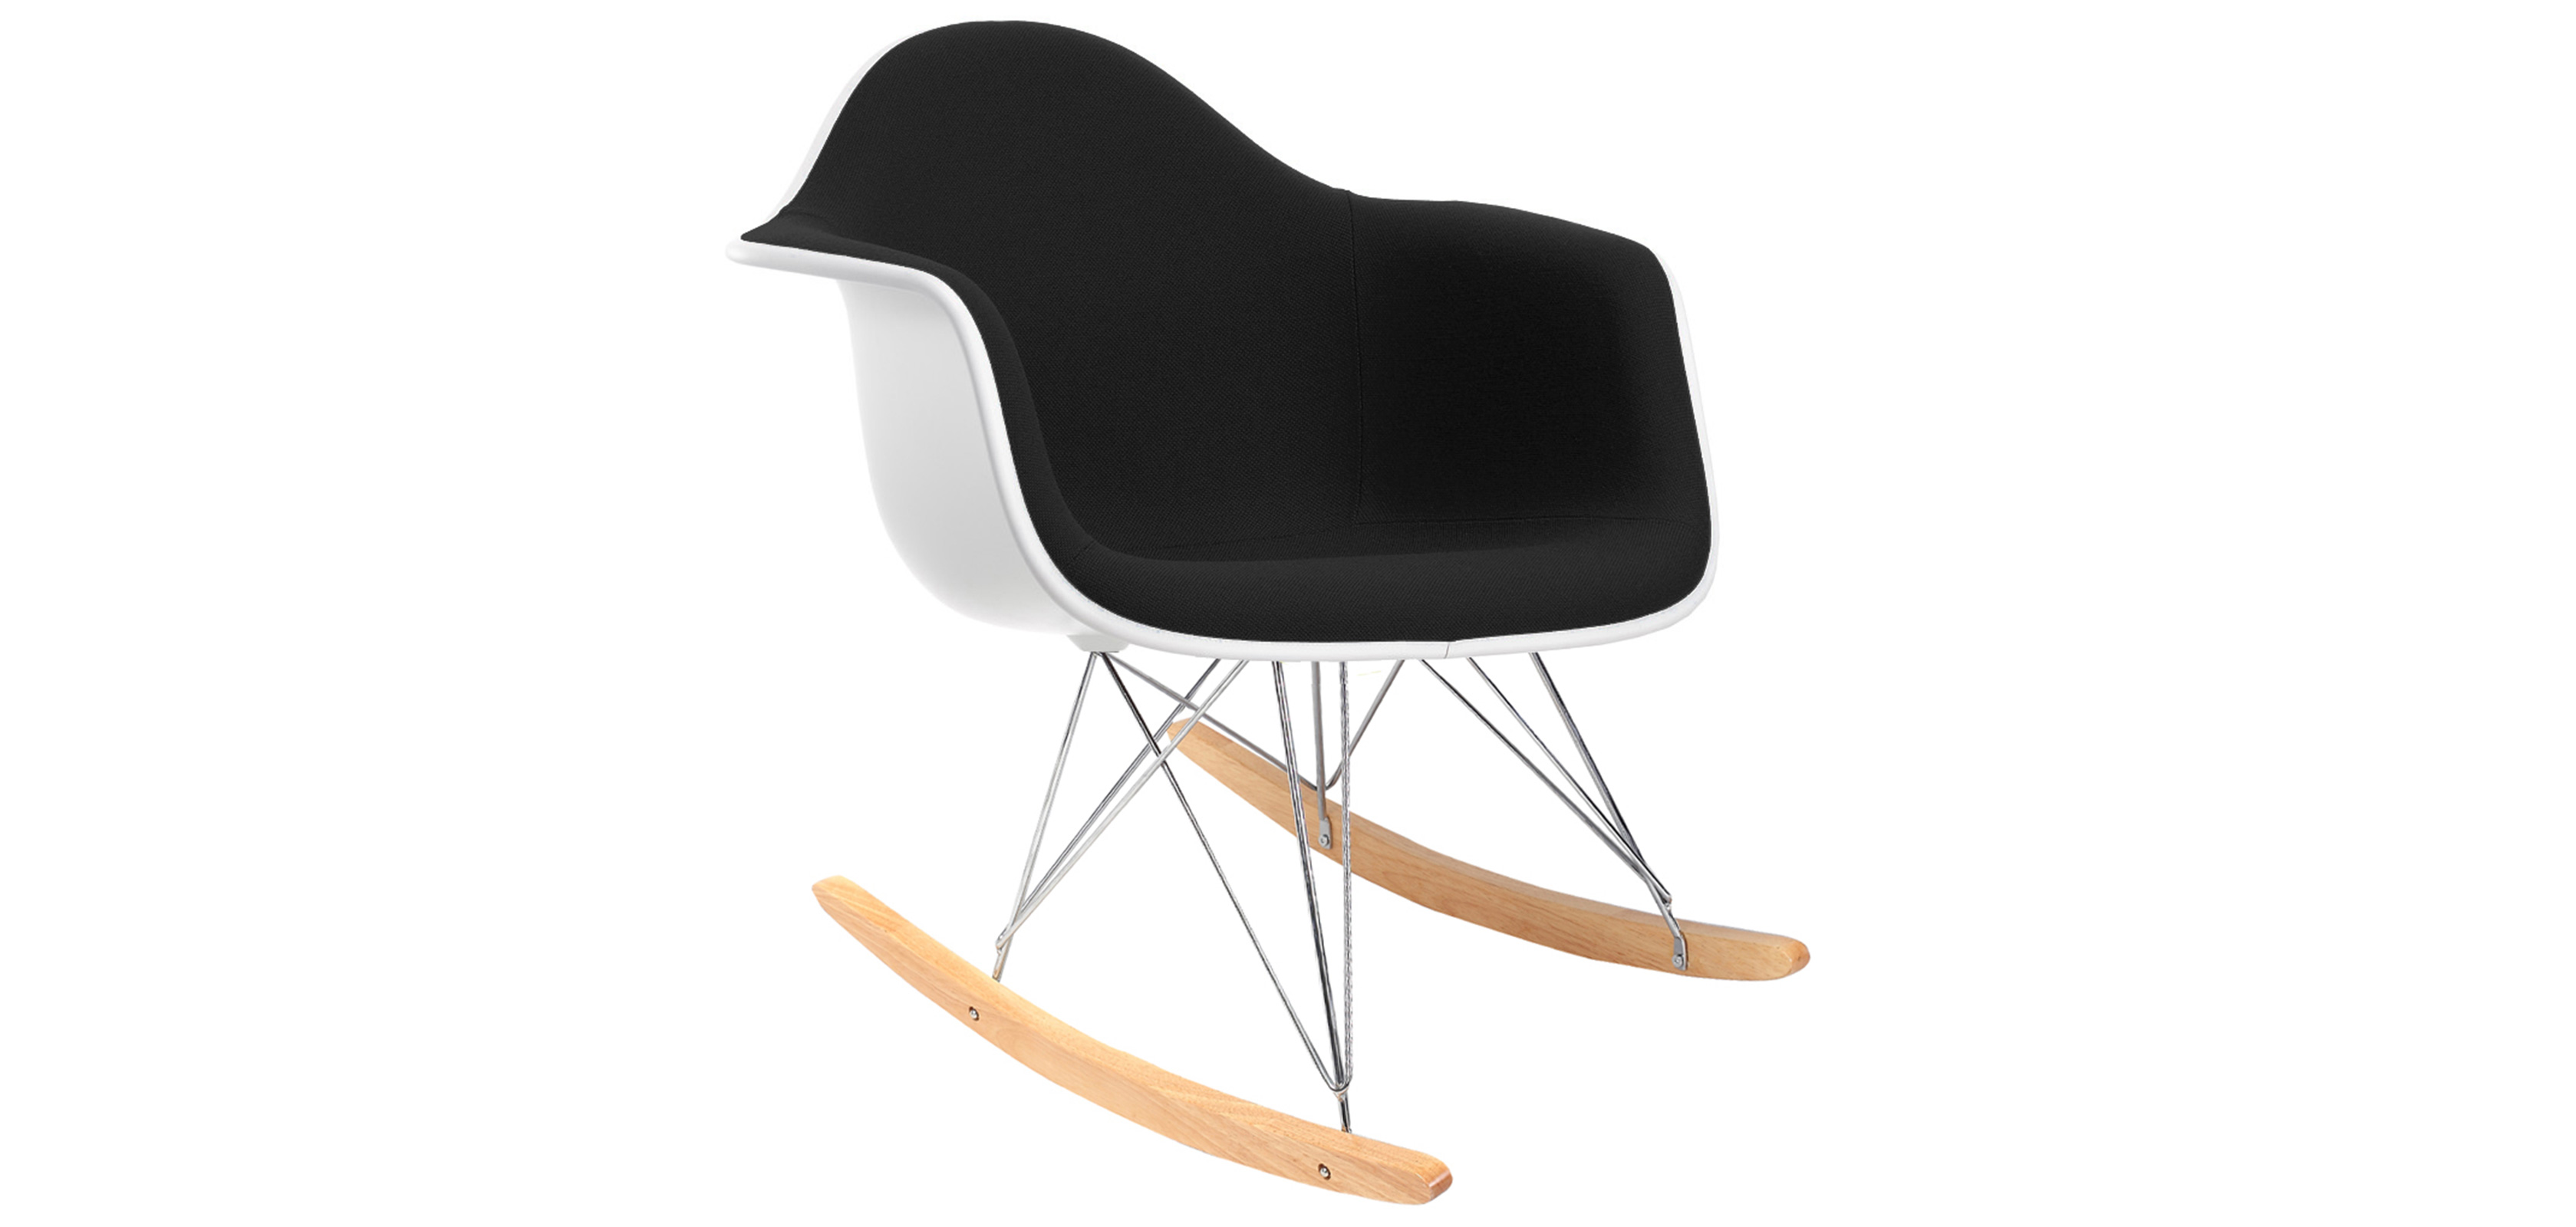 chaise charles eames pas cher meilleures images d 39 inspiration pour votre design de maison. Black Bedroom Furniture Sets. Home Design Ideas